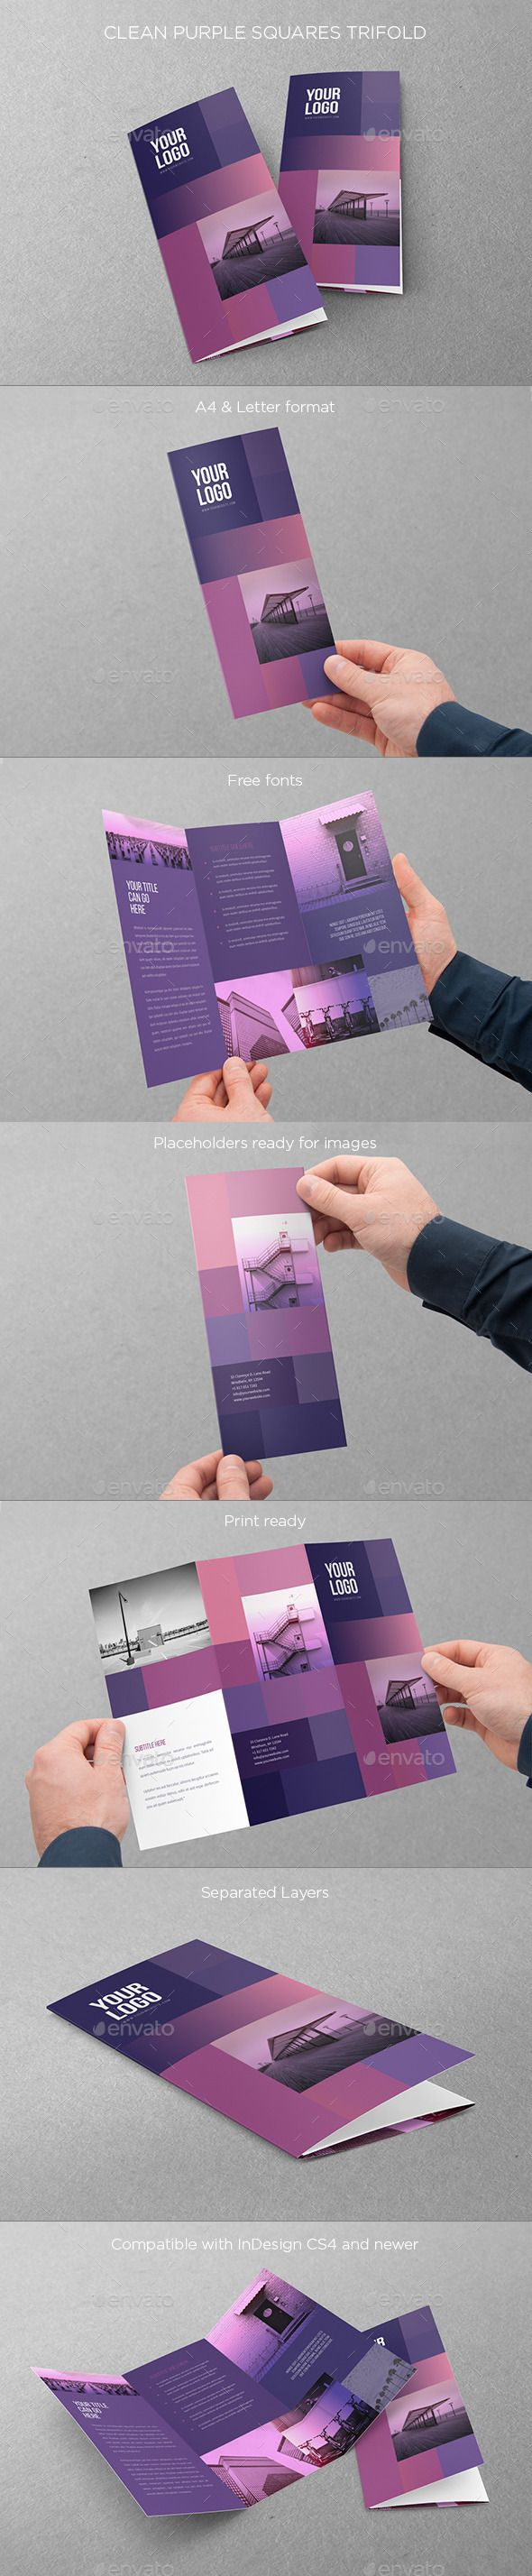 Clean Purple Squares Trifold Brochure Template